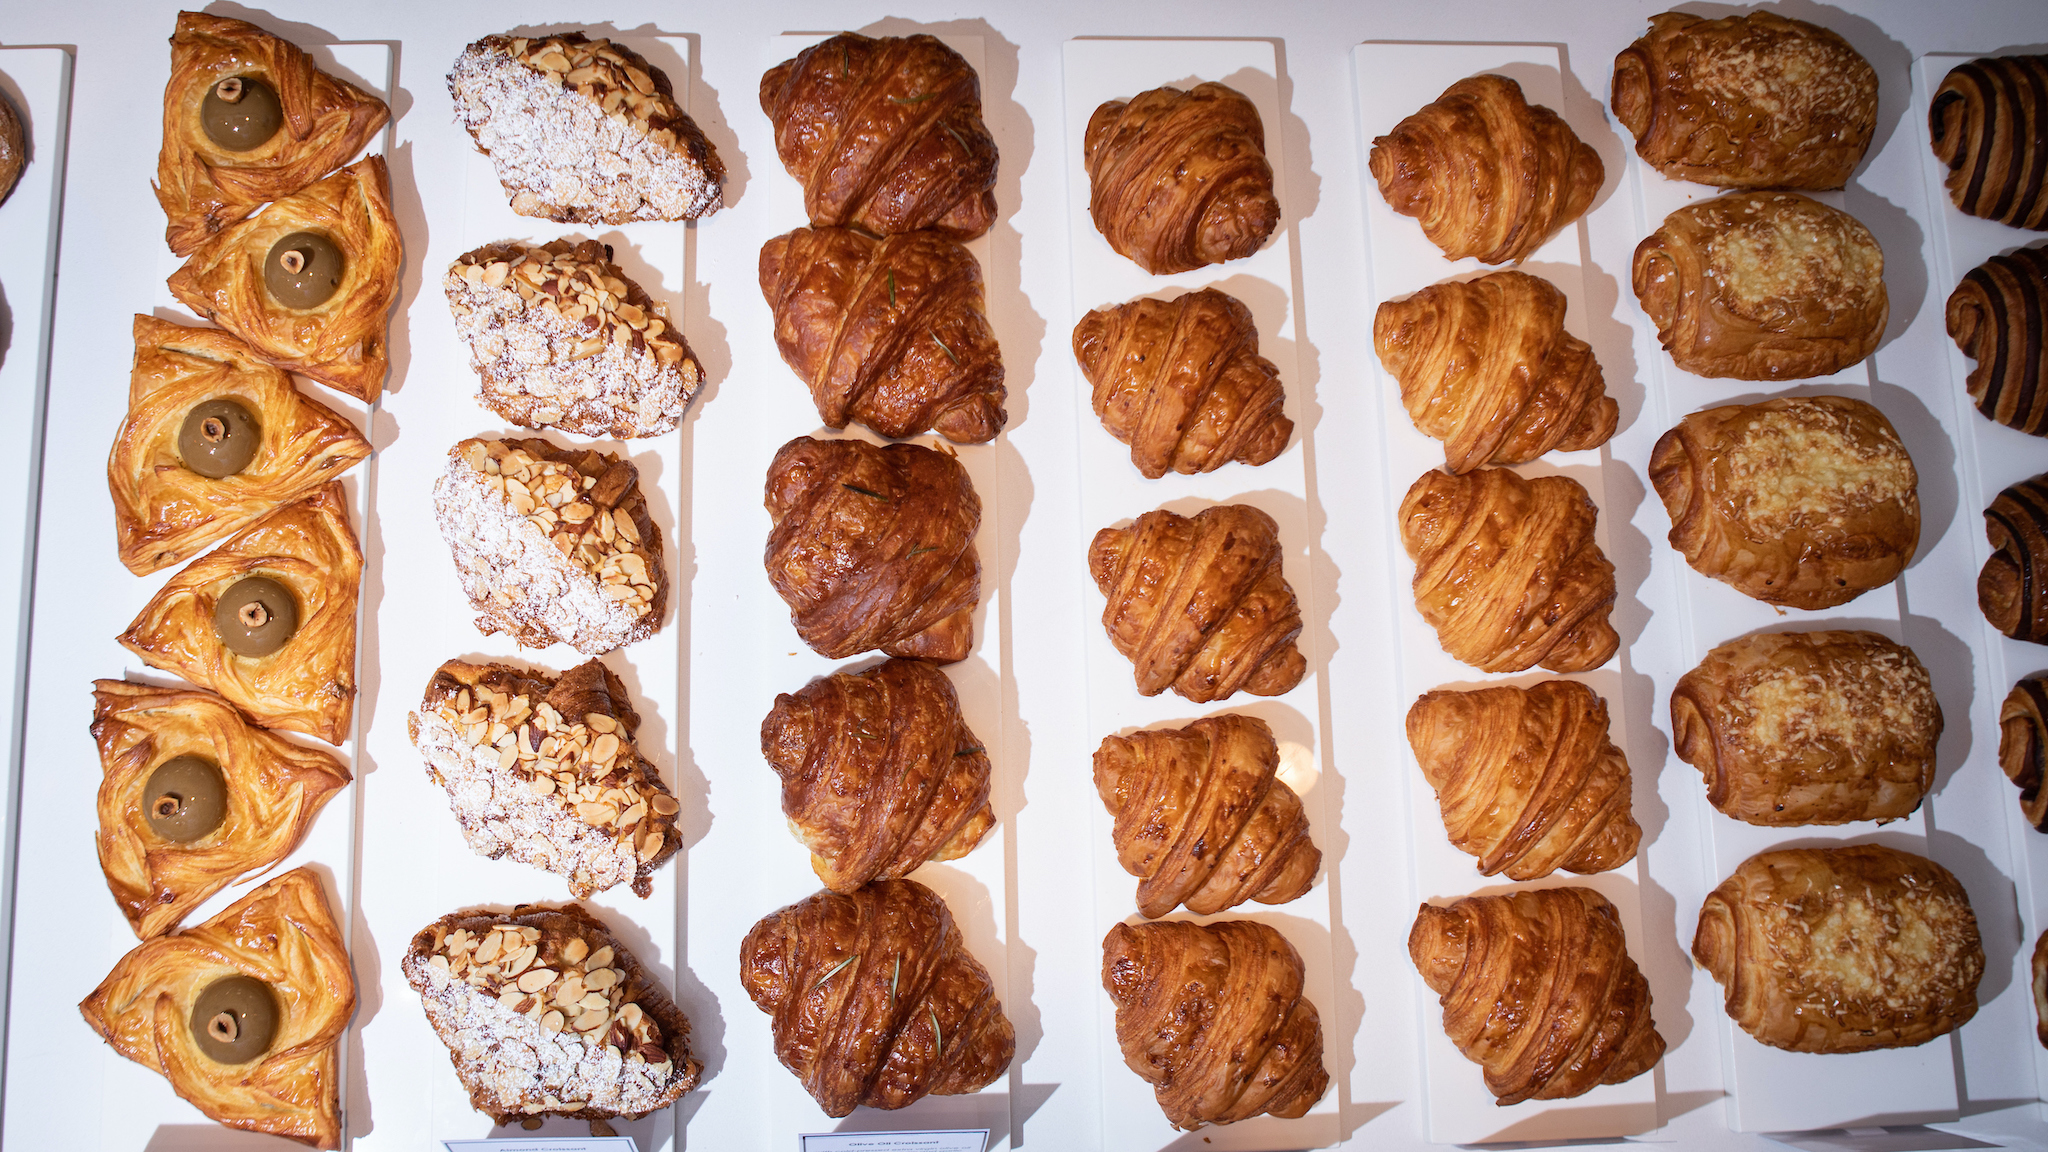 a spread of croissants from Dominique Ansel